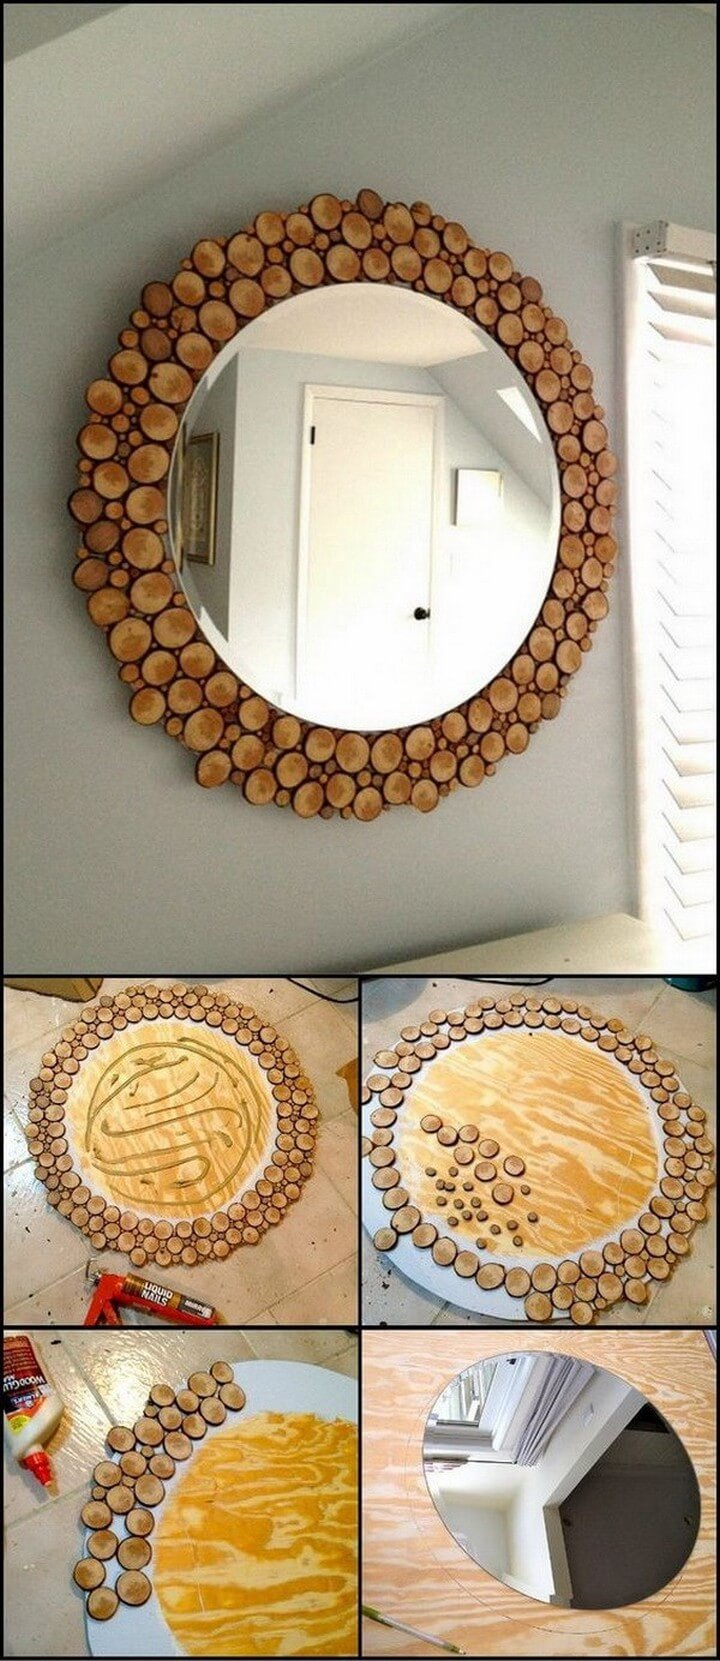 Budget Friendly DIY Home Decor Mirror Projects with Tutorials, diy home decor crafts, diy home decor projects, diy home decor pinterest, modern diy home decor, diy home decor ideas living room, diy hacks home decor, quirky diy home decor, diy ideas for the home, diy hacks home decor, cheap diy projects for your home, diy ideas for the home, diy home projects for beginners, modern diy home decor, diy home decor pinterest, diy home decor ideas living room, diy decor ideas for bedroom, cheap diy projects for your home, diy home projects for beginners, diy hacks home decor, diy ideas for the home, diy home decor pinterest, modern diy home decor, diy home decor ideas living room, quirky diy home decor, diy home decor, diy home decor idea, ideas diy home decor, diy home decor craft, diy home decor project, diy home decor projects, crafts diy home decor, pinterest diy home decor, diy home decor dollar tree, easy diy home decor ideas, diy home decor ideas living room, rustic diy home decor, diy home decor ideas budget, diy home decor ideas on a budget, dollar tree diy home decor 2018, diy home decor craft ideas, diy home decor projects cheap, diy home decor christmas, top diy home decor blogs, budget diy home decor, diy home decor youtube, simple diy home decor, thrift store diy home decor, elegant diy home decor, diy home decor websites, pinterest diy home decor projects, inexpensive diy home decor, diy home decor painting, hobby lobby diy home decor, easy cheap diy home decor, diy home decor crafts pinterest, diy home decor tutorials, pinterest diy home decor ideas, michaels diy home decor, vintage diy home decor, best diy home decor youtube channels, spring diy home decor, diy home decor instagram, diy home decor wall hangings, diy home decor christmas gifts, diy home decor flower vase, diy home decor ideas for small homes, diy home decor wine bottles, low cost diy home decor, diy home decor mason jars, diy home decor books, diy home decor living room, diy home decor craft projects, diy home decor canvas art, unique diy home decor ideas, diy home decor magazine, 33 cool diy home decor ideas, affordable diy home decor, quirky diy home decor, step by step diy home decor, diy home decor from recycled materials, diy home decor for apartments, simple diy home decor ideas, disney diy home decor, valentine's day diy home decor, diy home decor ideas kitchen, diy home decor recycled, simple diy home decor projects, diy home decor bathroom, diy home decor ideas india, easy diy home decor pinterest, how to diy home decor, arts and crafts diy home decor, diy home decor with cardboard, diy home decor ideas bathroom, diy home decor projects on a budget, 21 magical and easy diy home decor ideas, diy home decor wall art, diy home decor with household items, creative diy home decor, easy diy home decor crafts, dollar tree diy home decor ideas, beautiful diy home decor, buzzfeed diy home decor, diy home decor ideas for diwali, diy home decor malaysia, inexpensive diy home decor ideas, diy home decor ideas with pallets, indian diy home decor blog, diy home decor with glass bottles, diy home decor crafts blog, diy home decor ideas for christmas, diy home decor ideas from waste, diy home decor ideas videos, diy home decor for diwali, diy home decor online, 19 awesome diy home decor, diy home decor for small spaces, diy home decor accessories, diy home decor with hot glue gun, diy home decor paper crafts, diy home decor indian style, diy home decor halloween, creative diy home decor ideas, diy home decor kitchen, pinterest diy home decor on a budget, diy home decor organization, diy home decor ideas 2018, pinterest diy home decor gifts, diy home decor subscription box, diy home decor outdoor, diy home decor south africa, diy home decor 2016, diy home decor out of waste, diy home decor on the cheap, diy home decor ideas youtube, diy home decor using household items, diy home decor maybaby, diy home decor craft kit, diy home decor and organization, diy home decor using cans, diy home decor on a budget pinterest, diy home decor bloggers, diy home decor using nature, diy home decor small apartment, diy home decor using branches, diy home decor minimalist, diy home decor tv shows, instagram diy home decor, diytomake.com